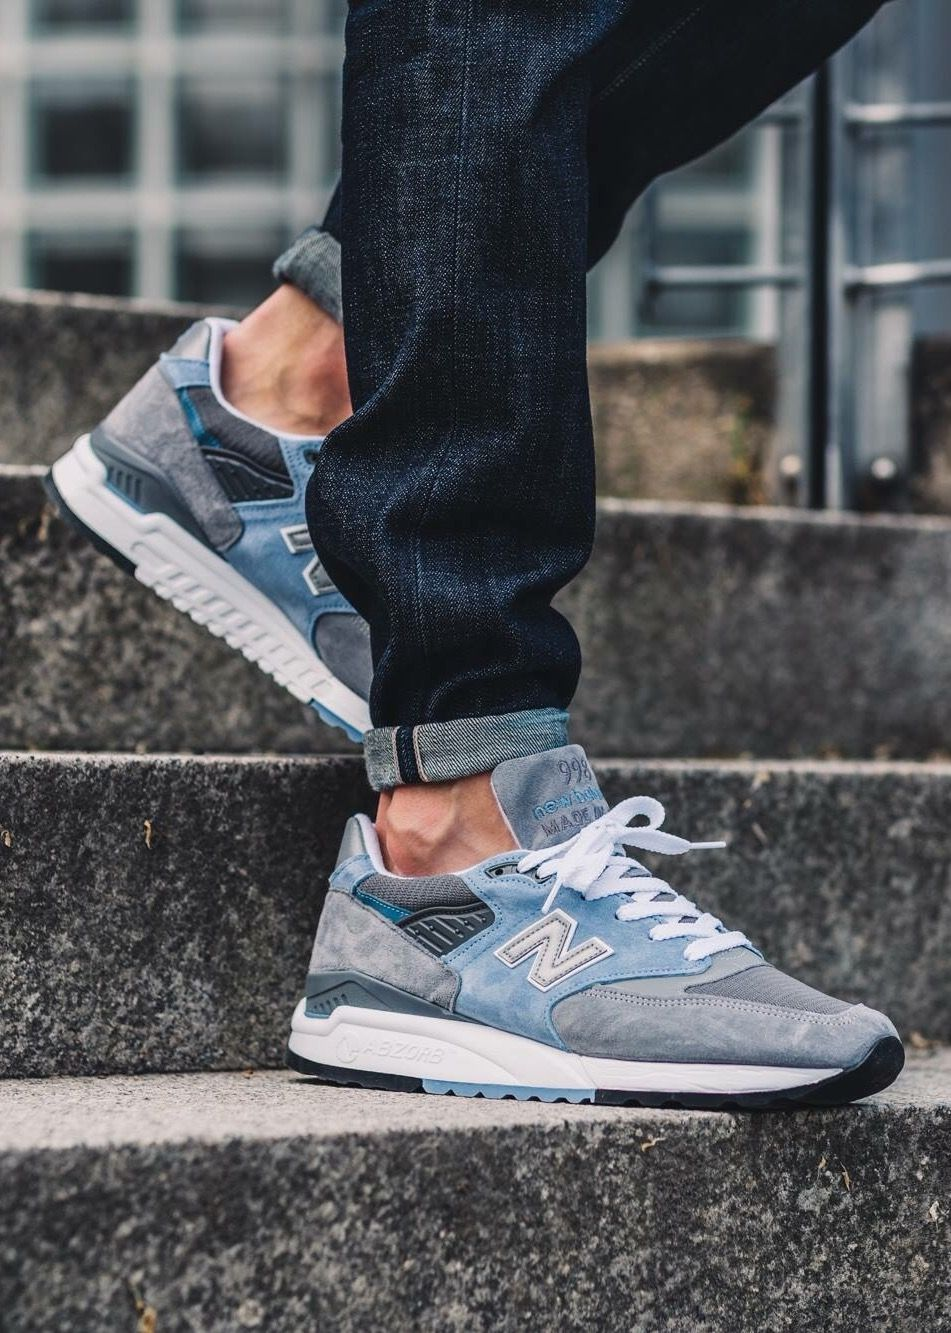 New Balance 574S | SNEAKERS in 2019 | Sneakers fashion